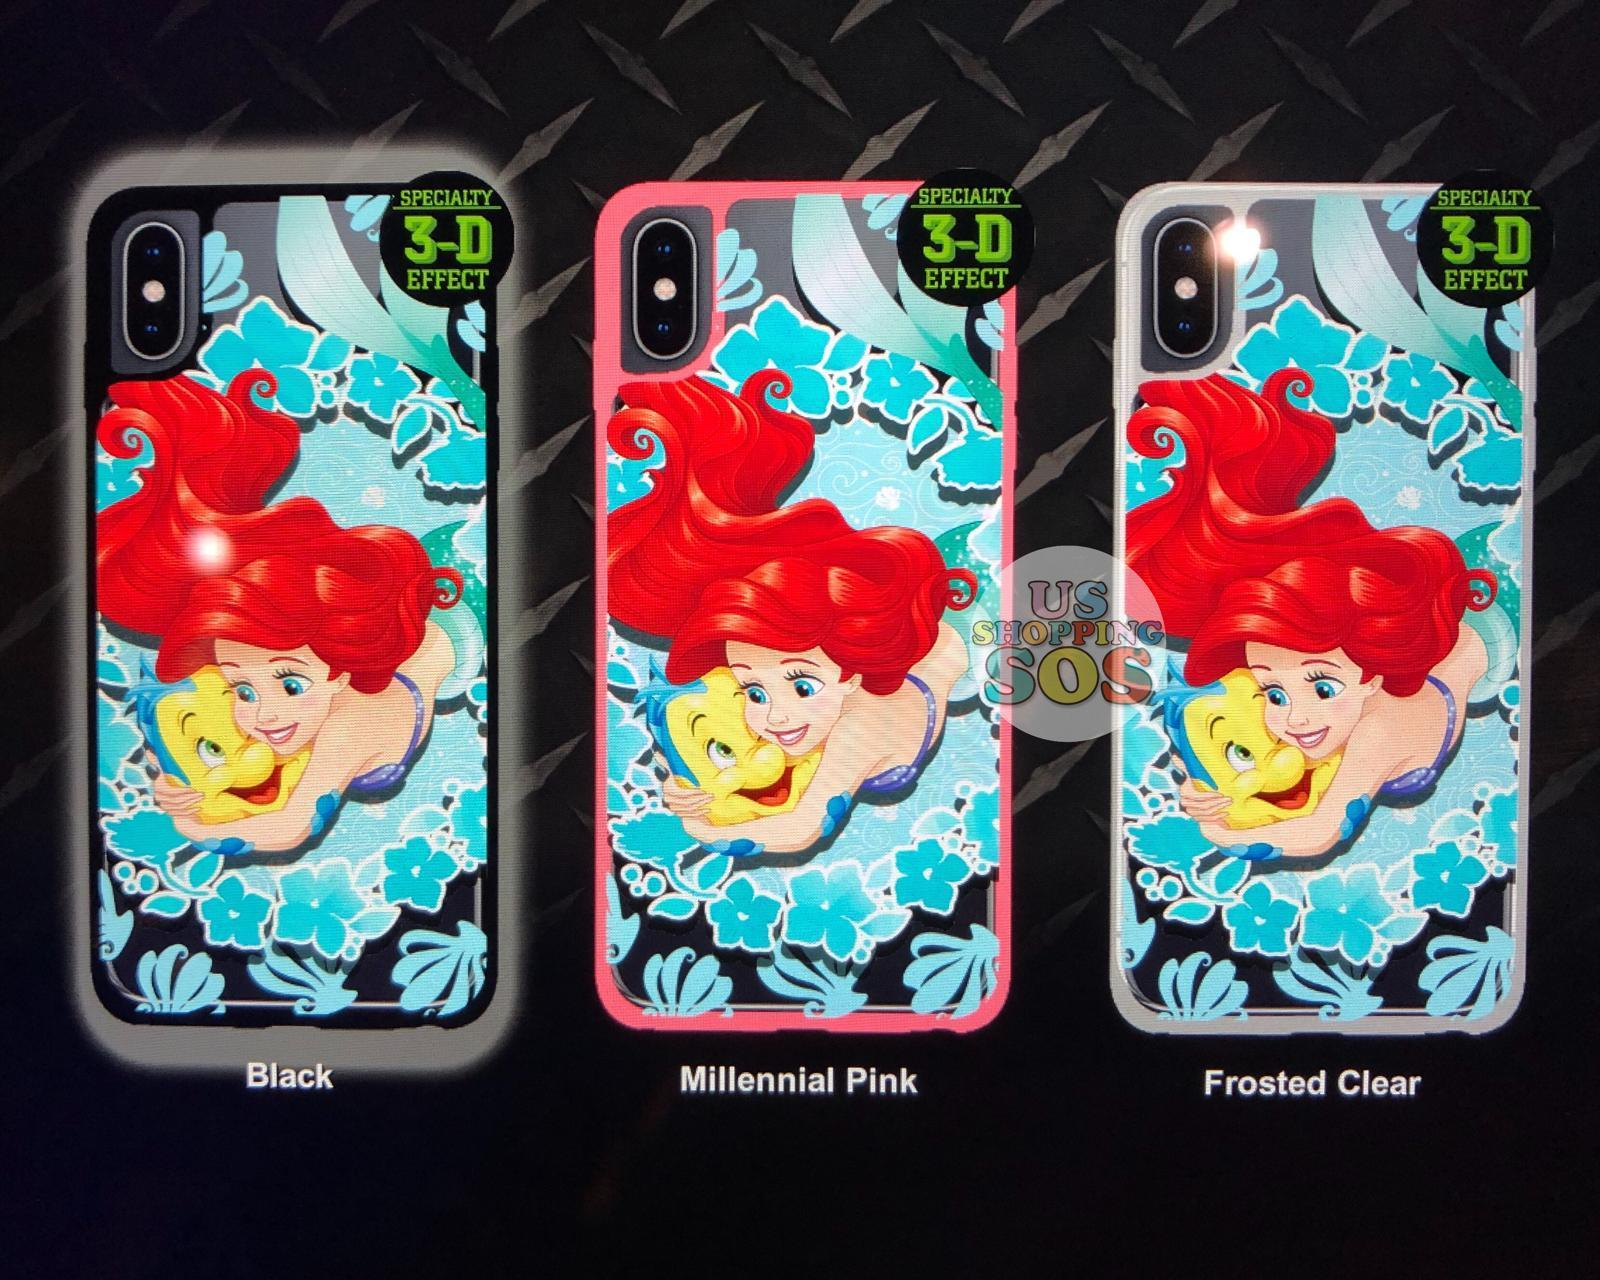 DLR - Custom Made Phone Case - Princess with Friends - Ariel & Flounder (3-D Effect)